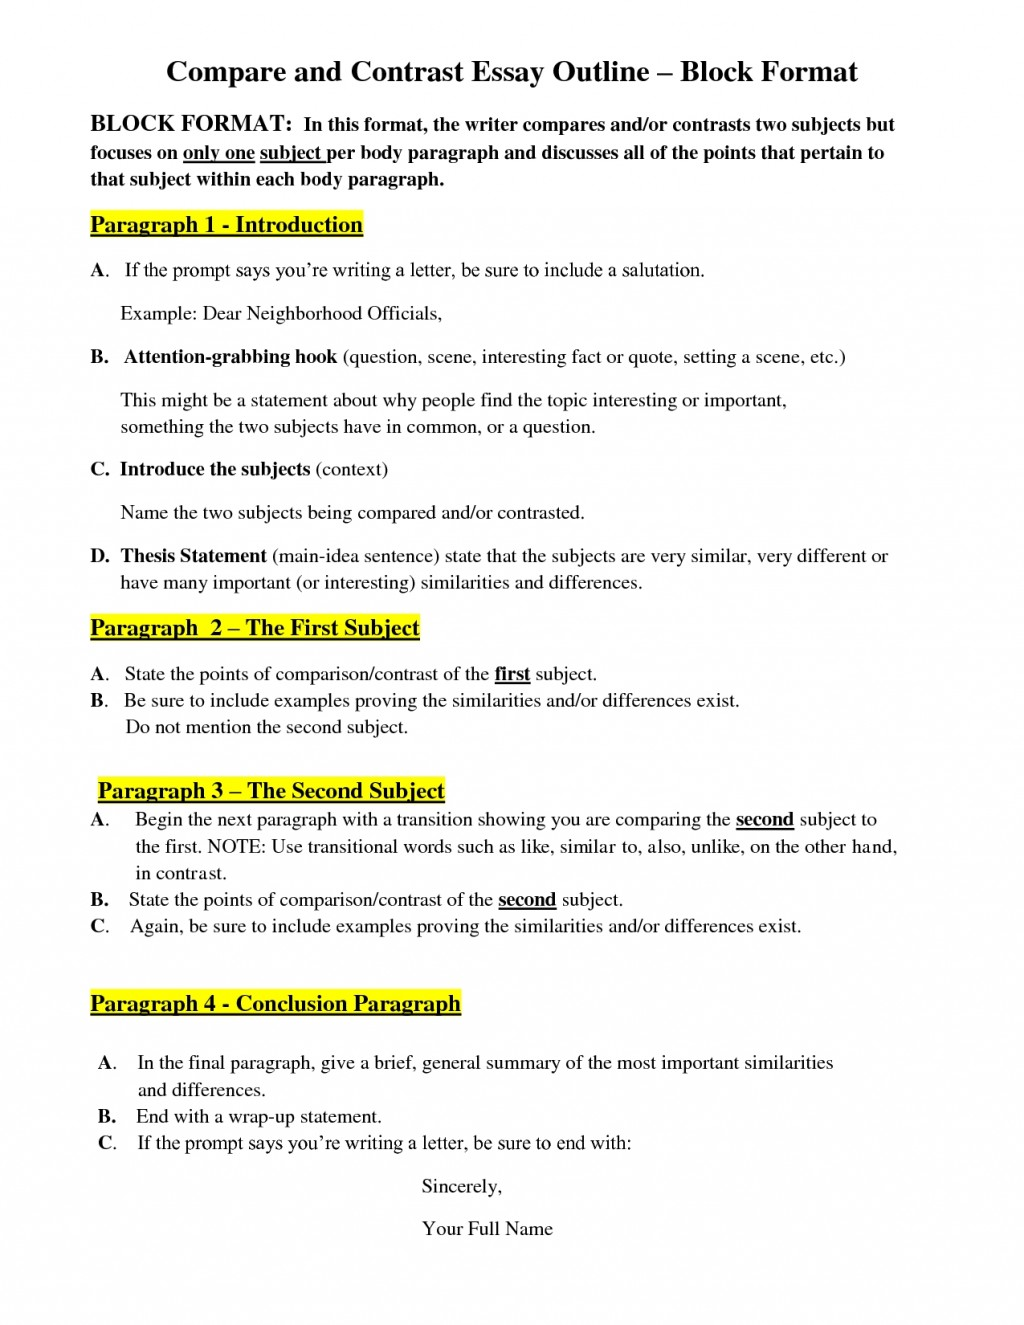 004 Essay Template Compare Contrast Outline Example Maxresdefault Creating Project Plan For Your Youtube How To An With Good Cover Letter Samples Point Wonderful By Structure Introduction Large